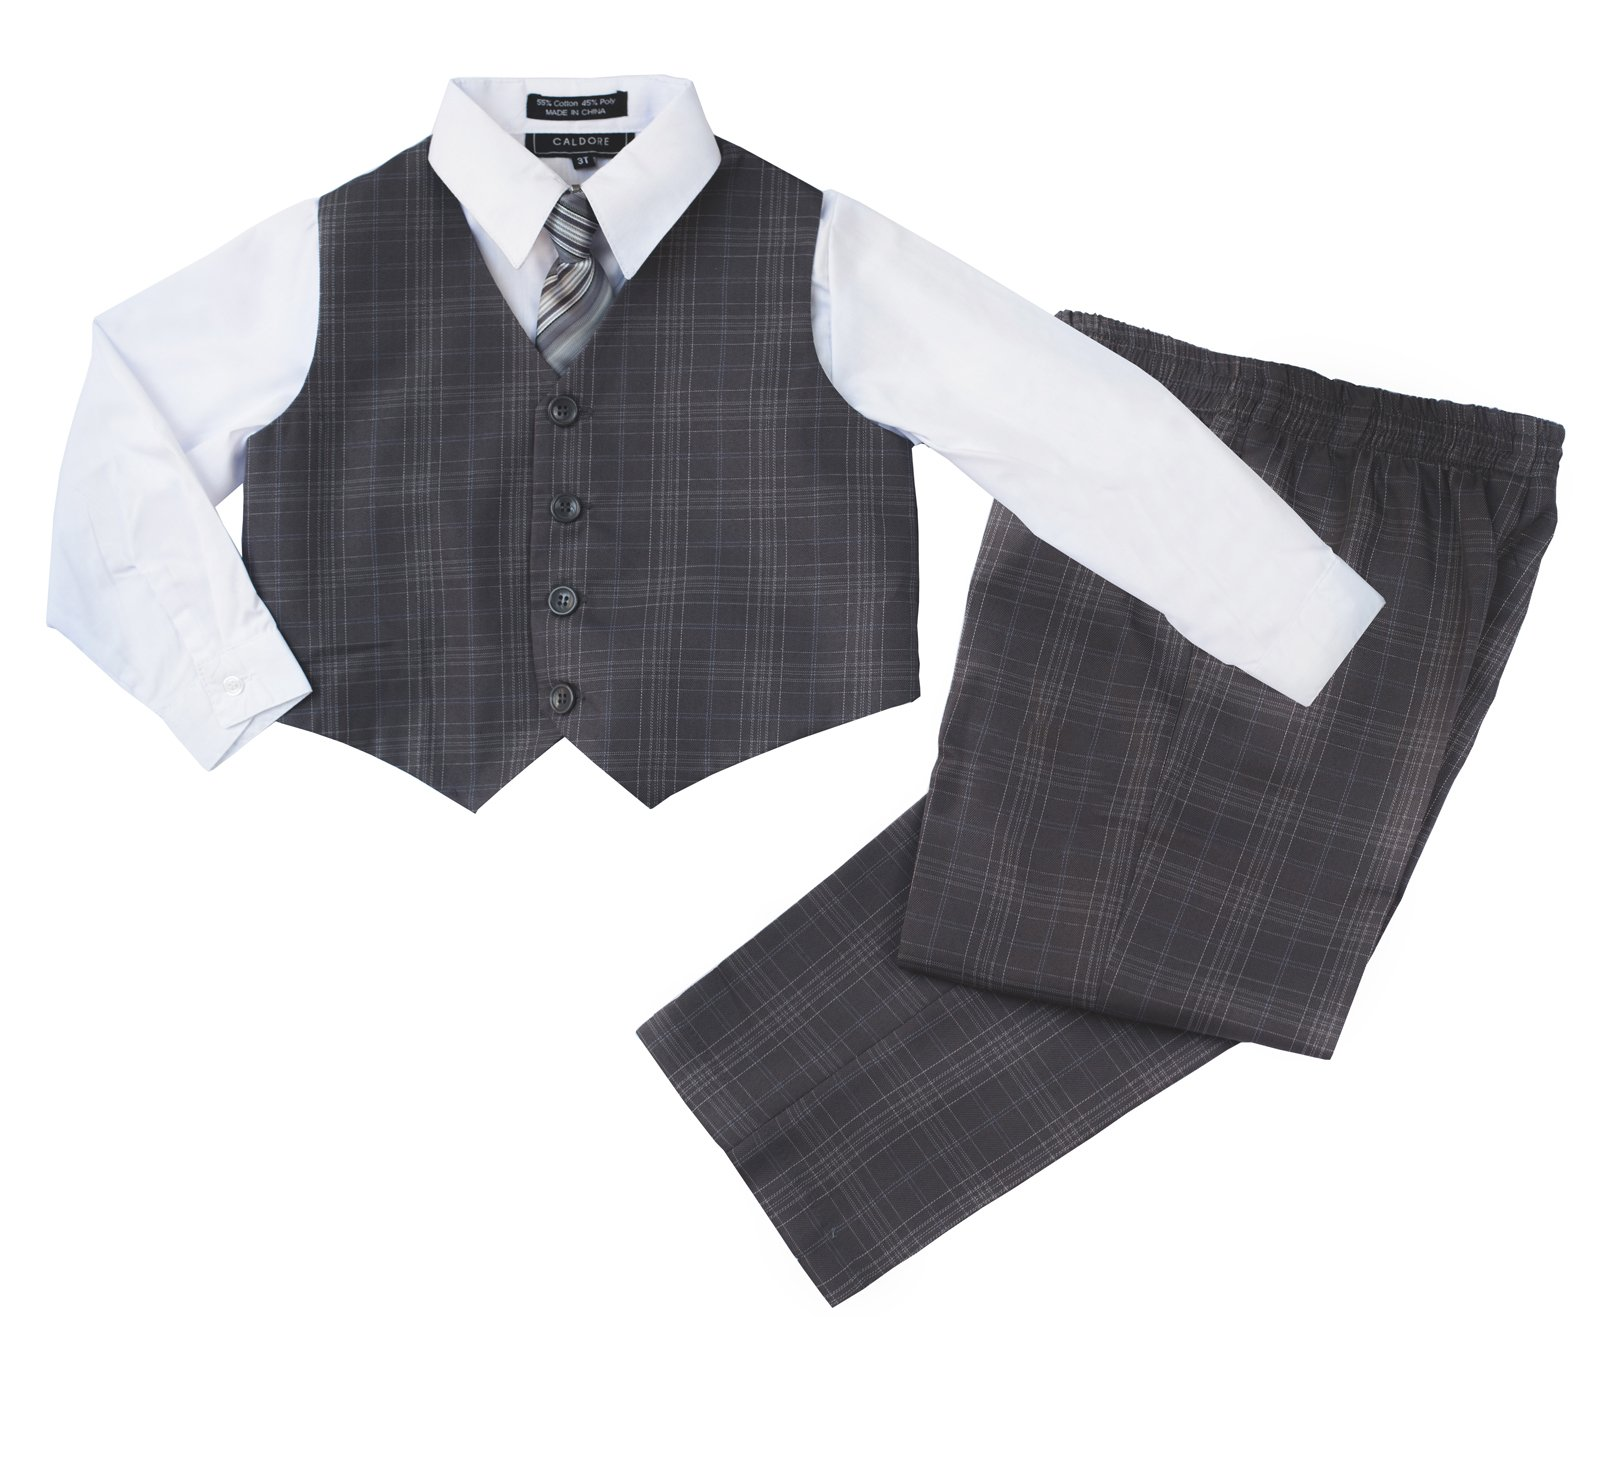 ec7112c0b1d3 CALDORE USA Boys Formal Suit Set - Vest Dress Shirt Pants and Matching Tie  Dressy Wear Outfit By Caldore